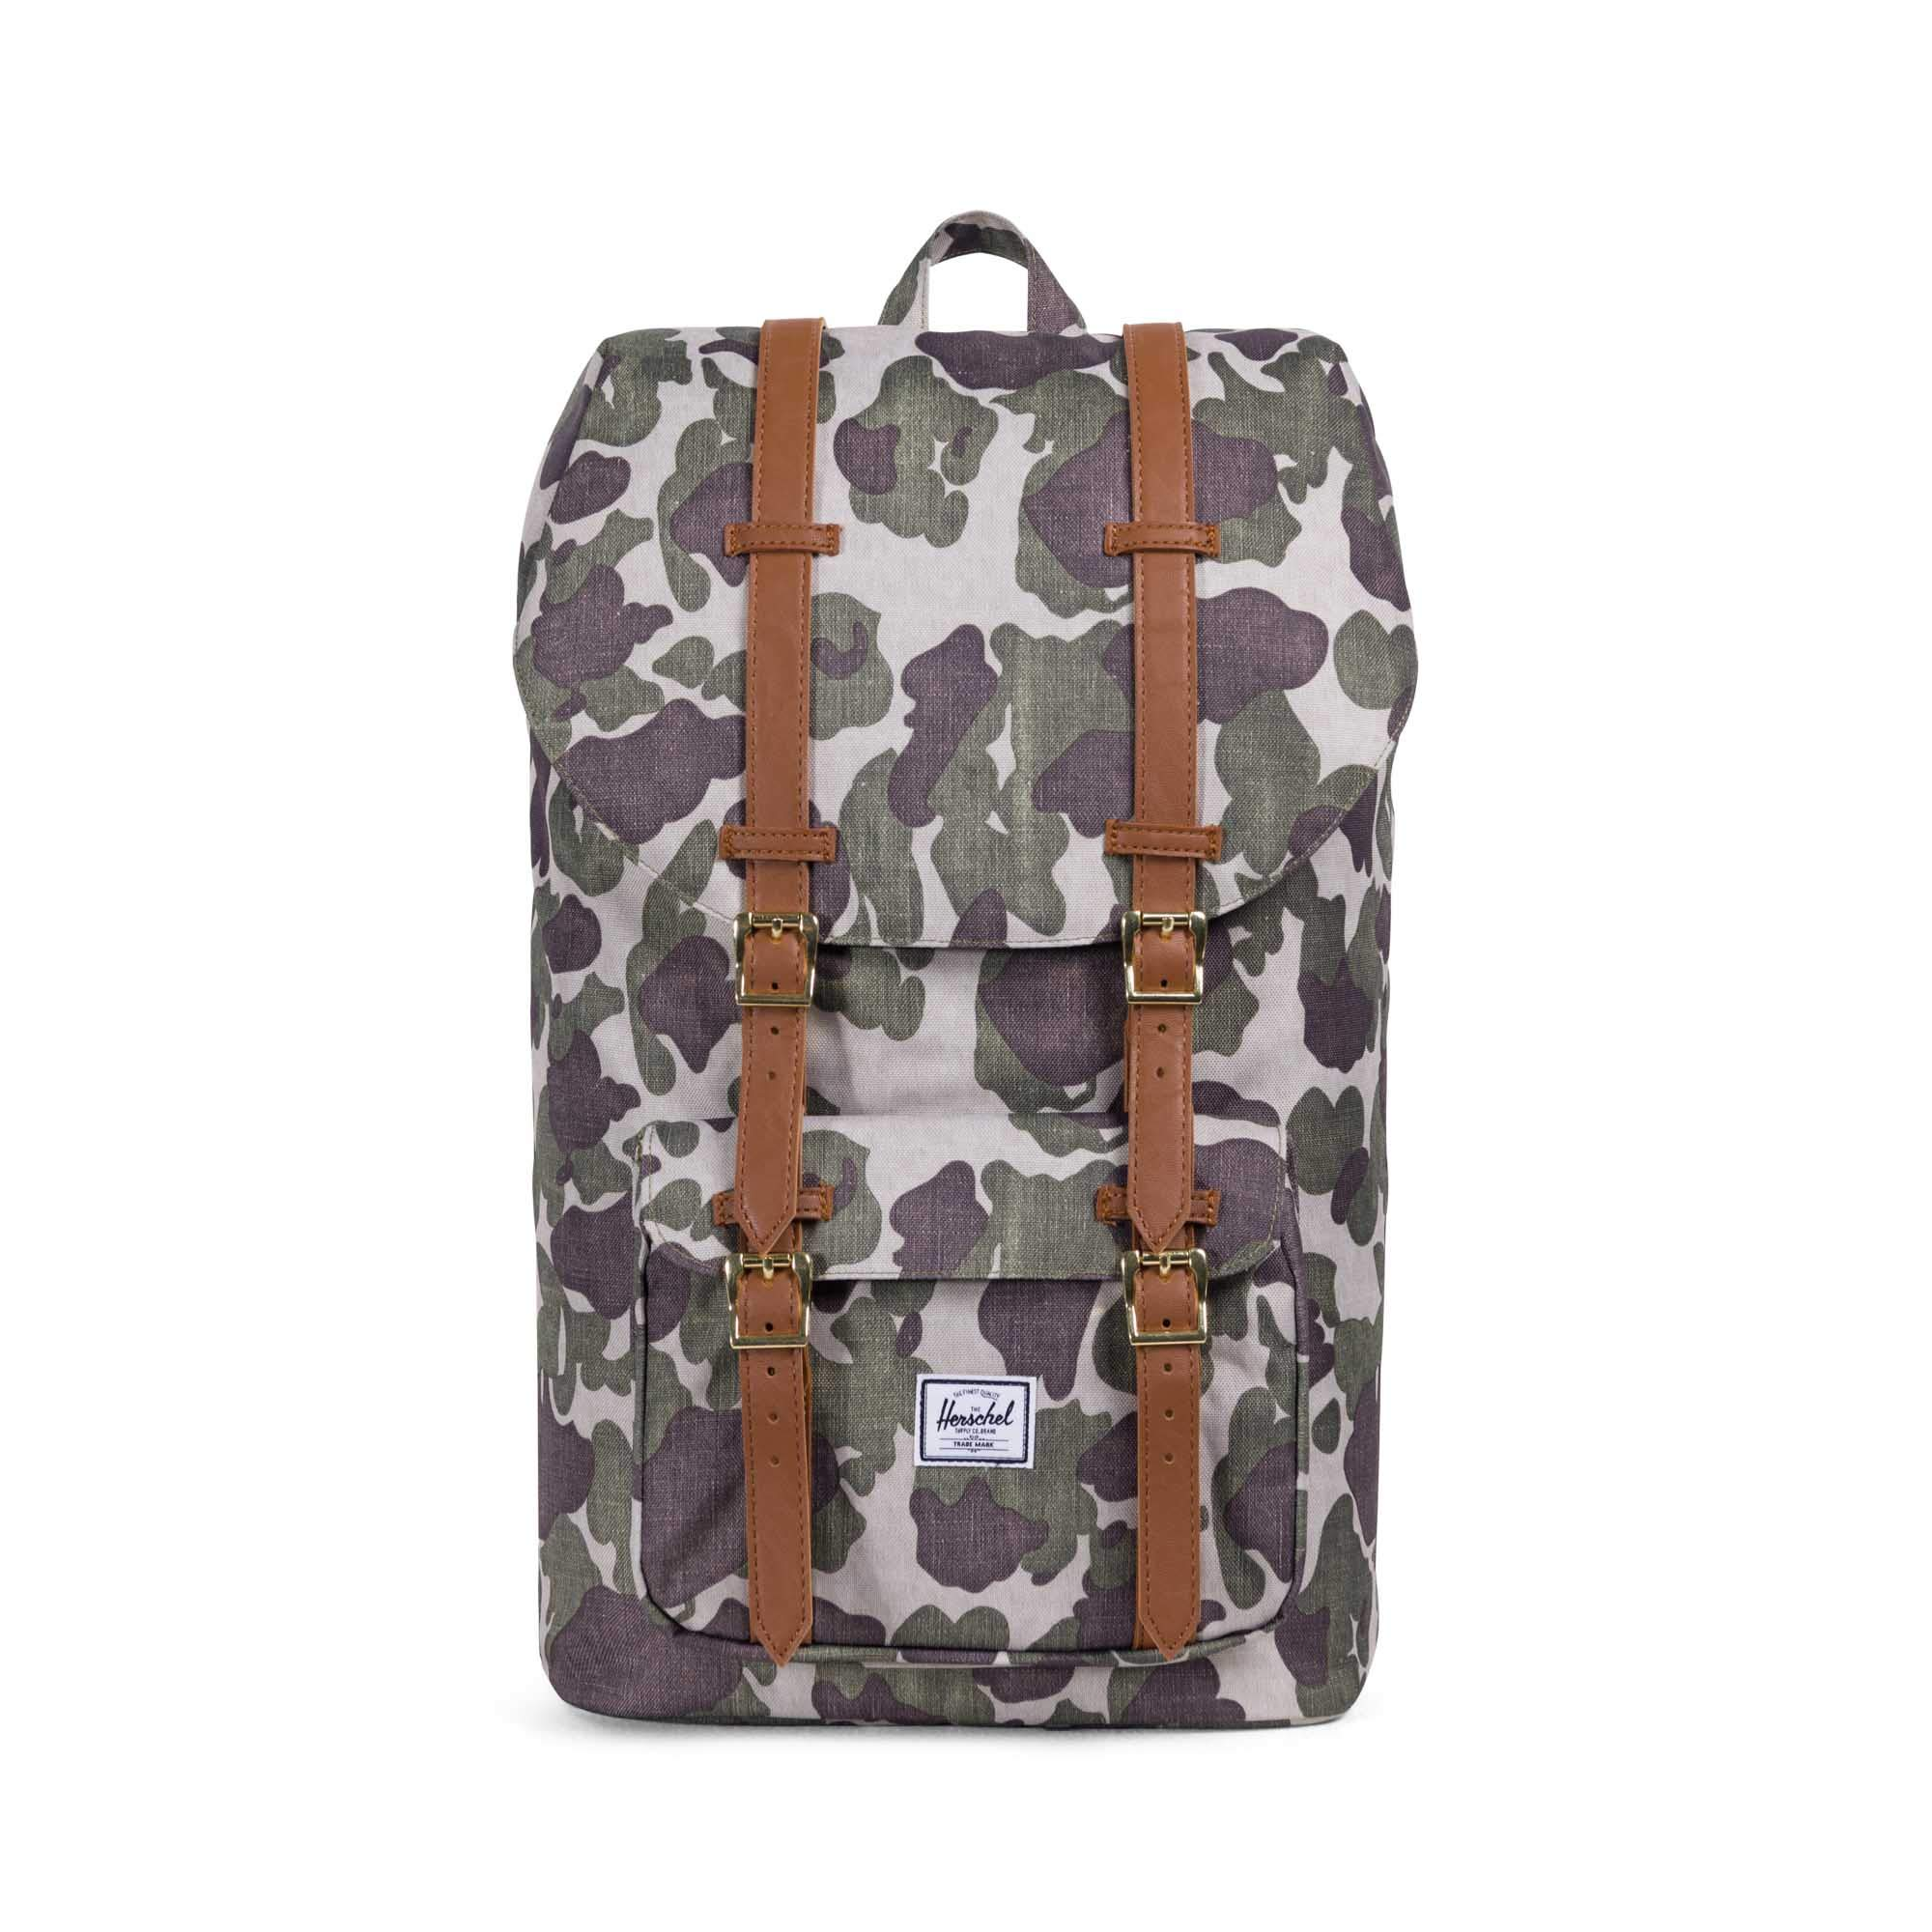 Herschel Supply Co. Little America Flapover Backpack, Frog Camo/Tan Synthetic Leather, Classic 25L by Herschel